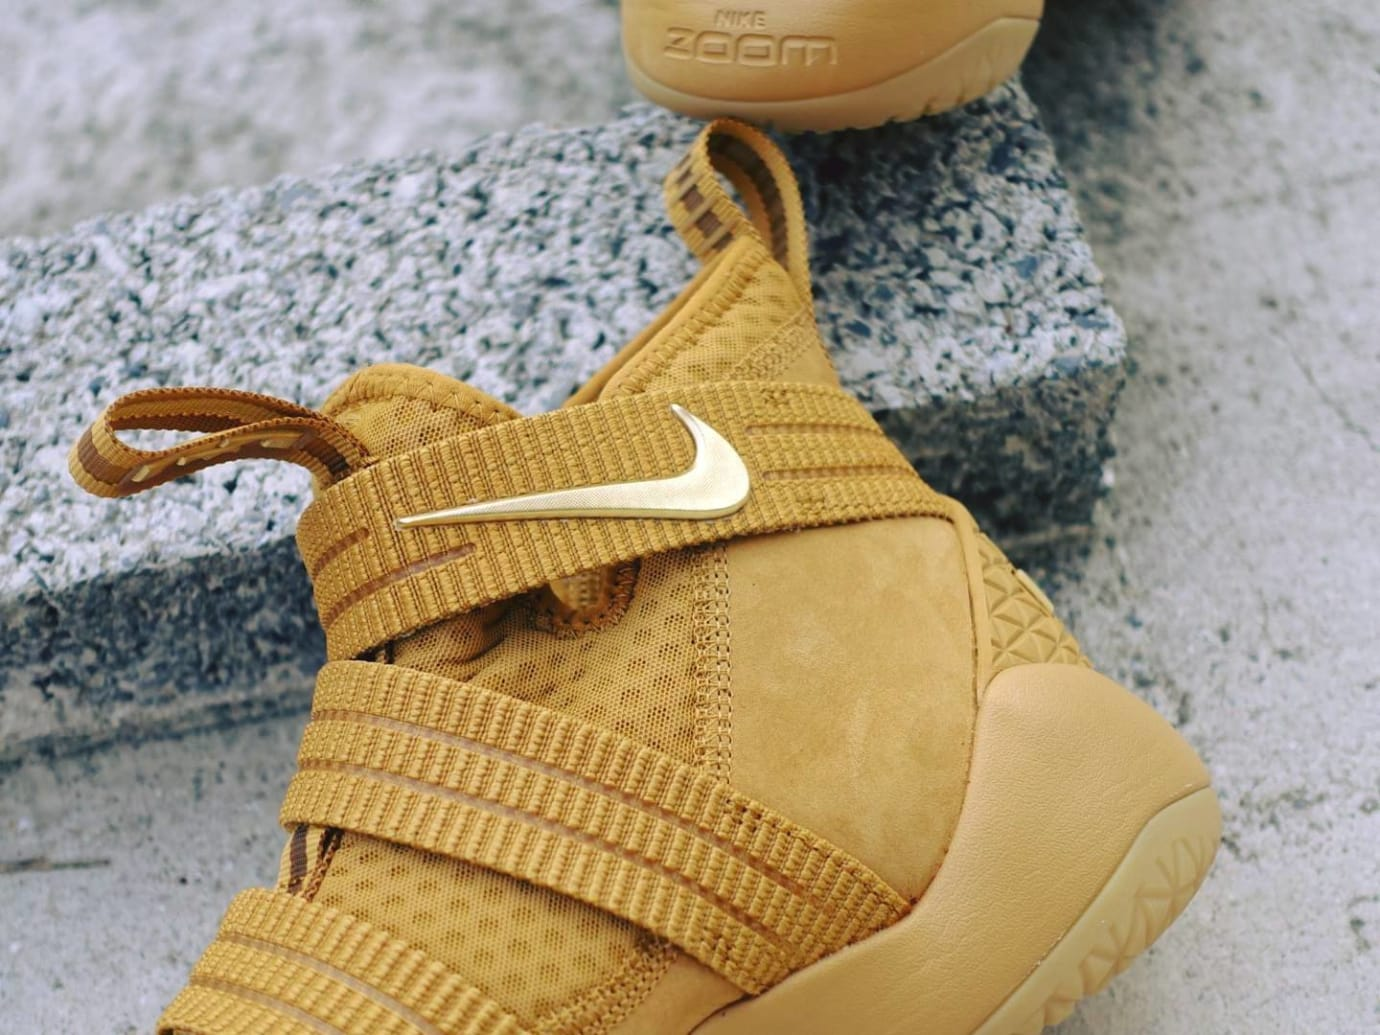 2e97af8a918 Nike LeBron Soldier 11 SFG Wheat Release Date 897647-700 (5)